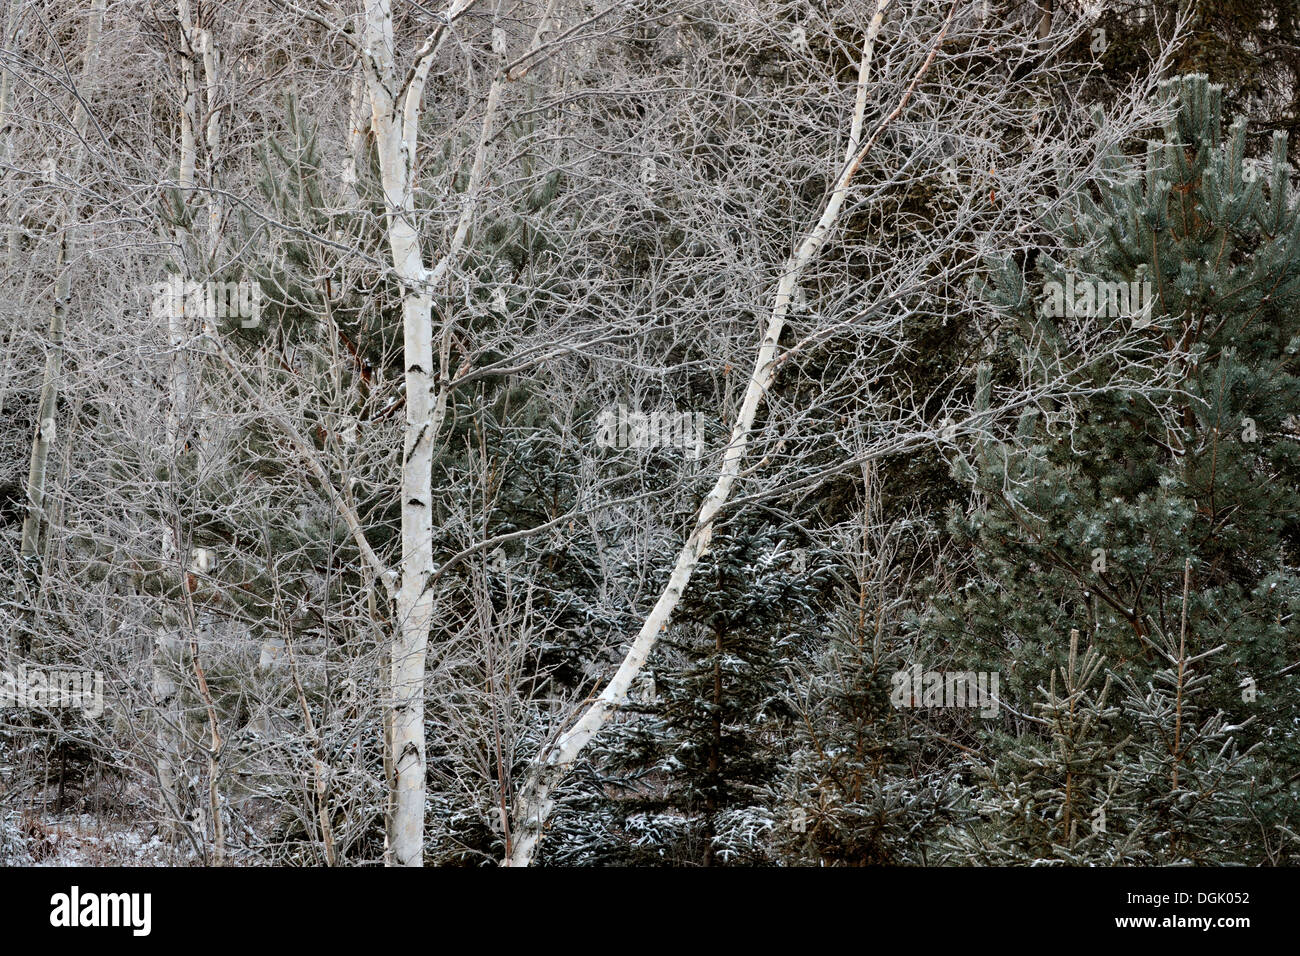 Birches and spruces with a dusting of snow in late autumn Greater Sudbury Ontario Canada - Stock Image